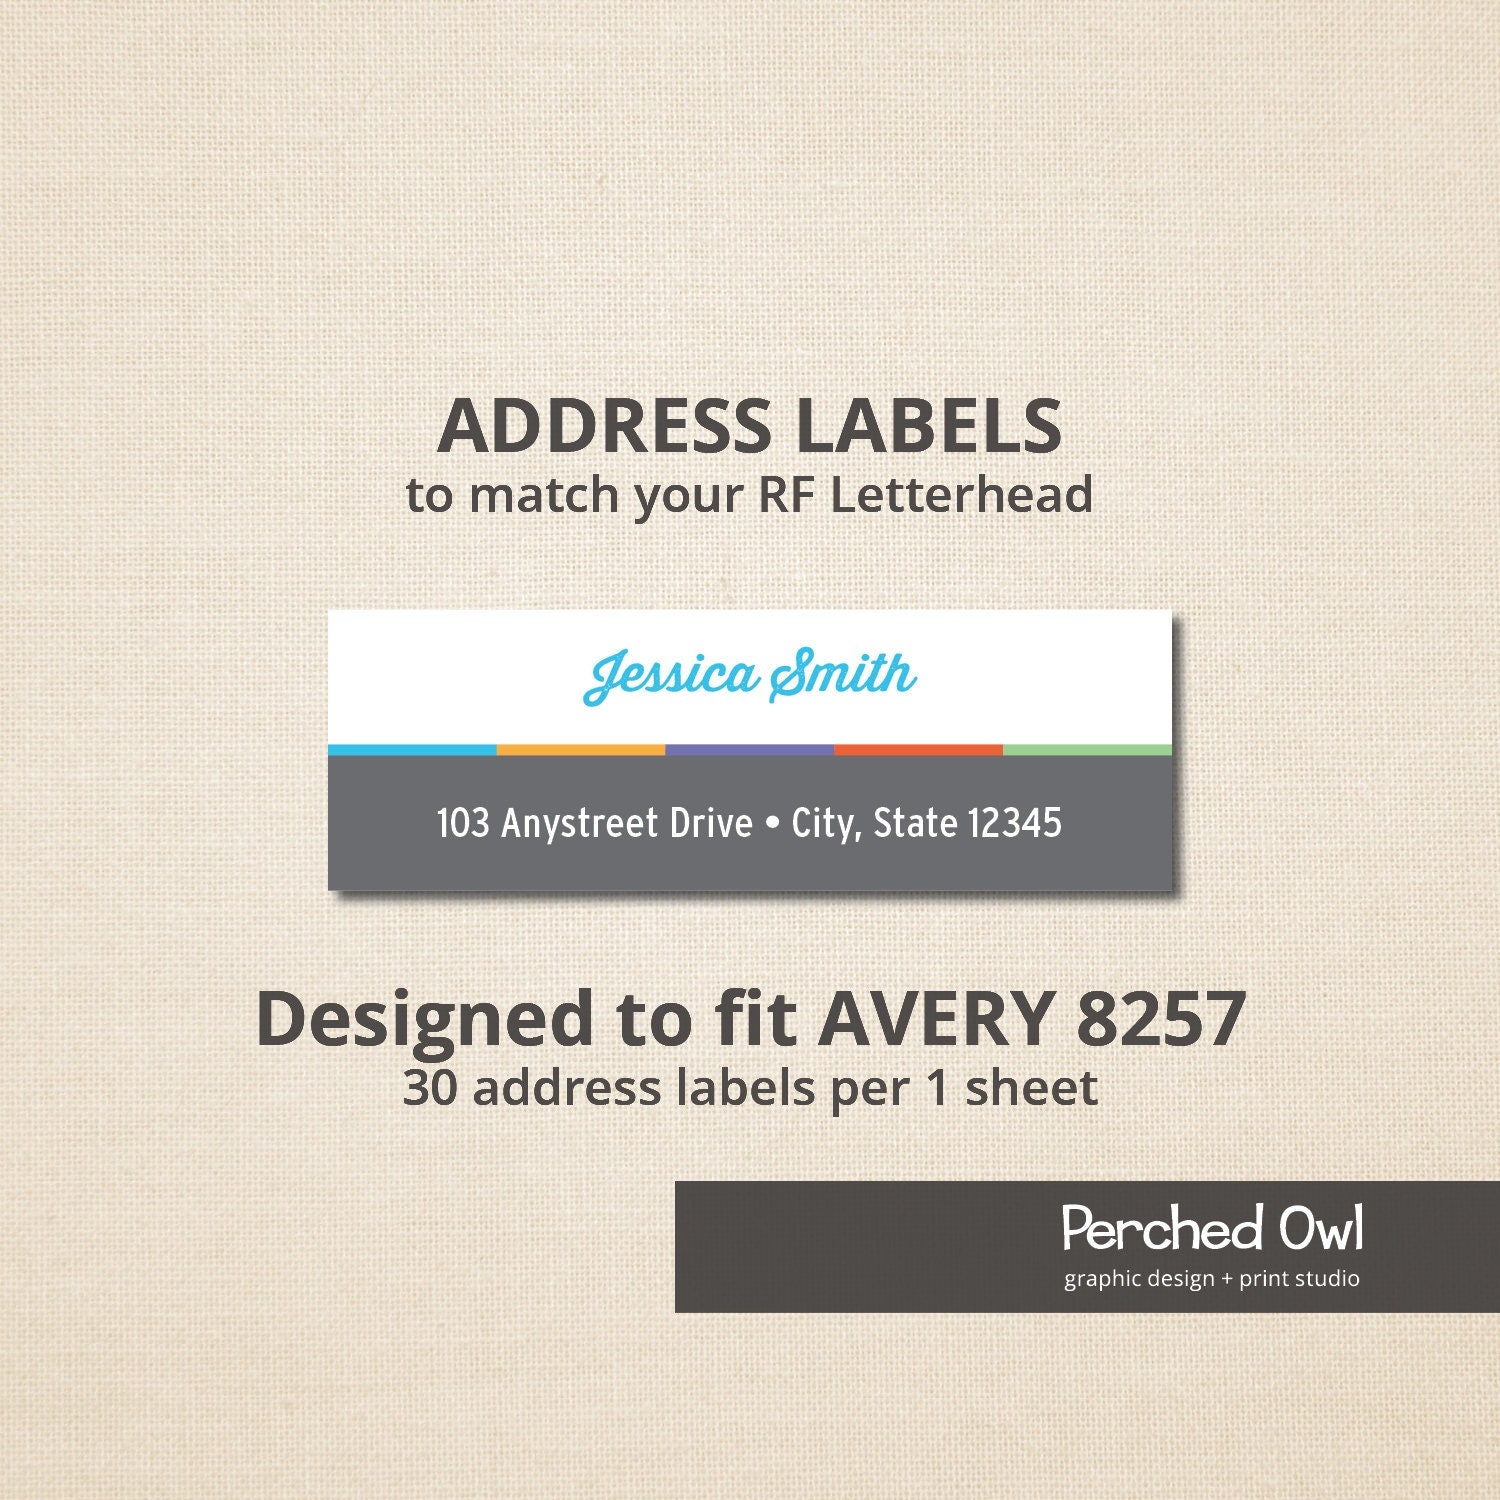 Address Labels Skincare Stationery Direct Selling Etsy